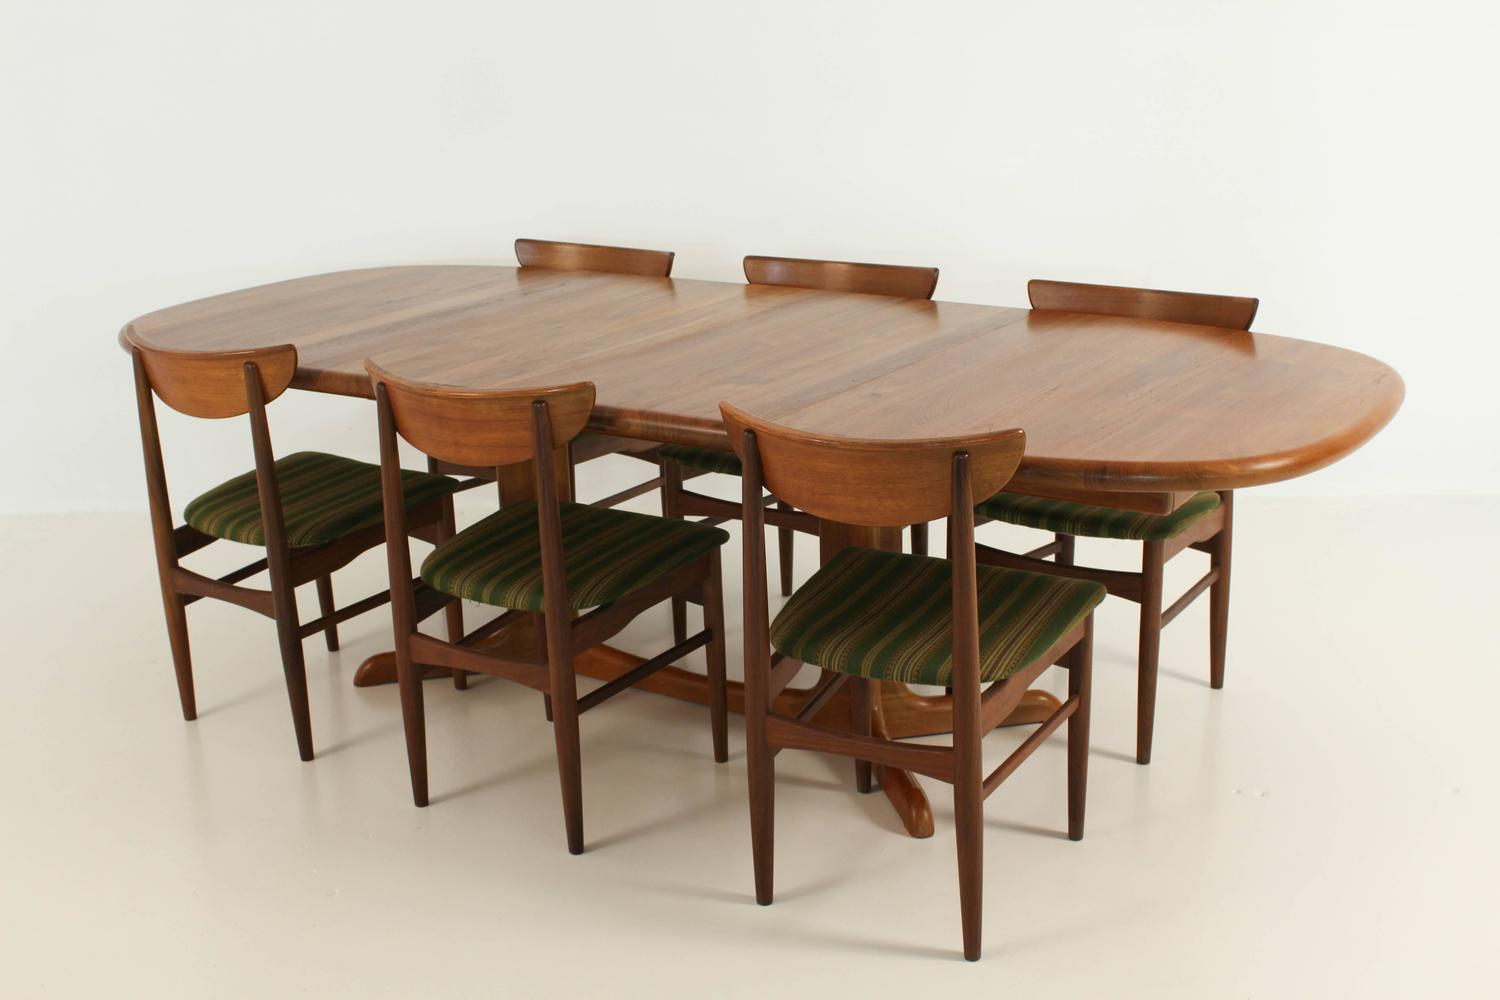 Magnificent Mid Century Modern Dining Table By Glostrup Denmark At